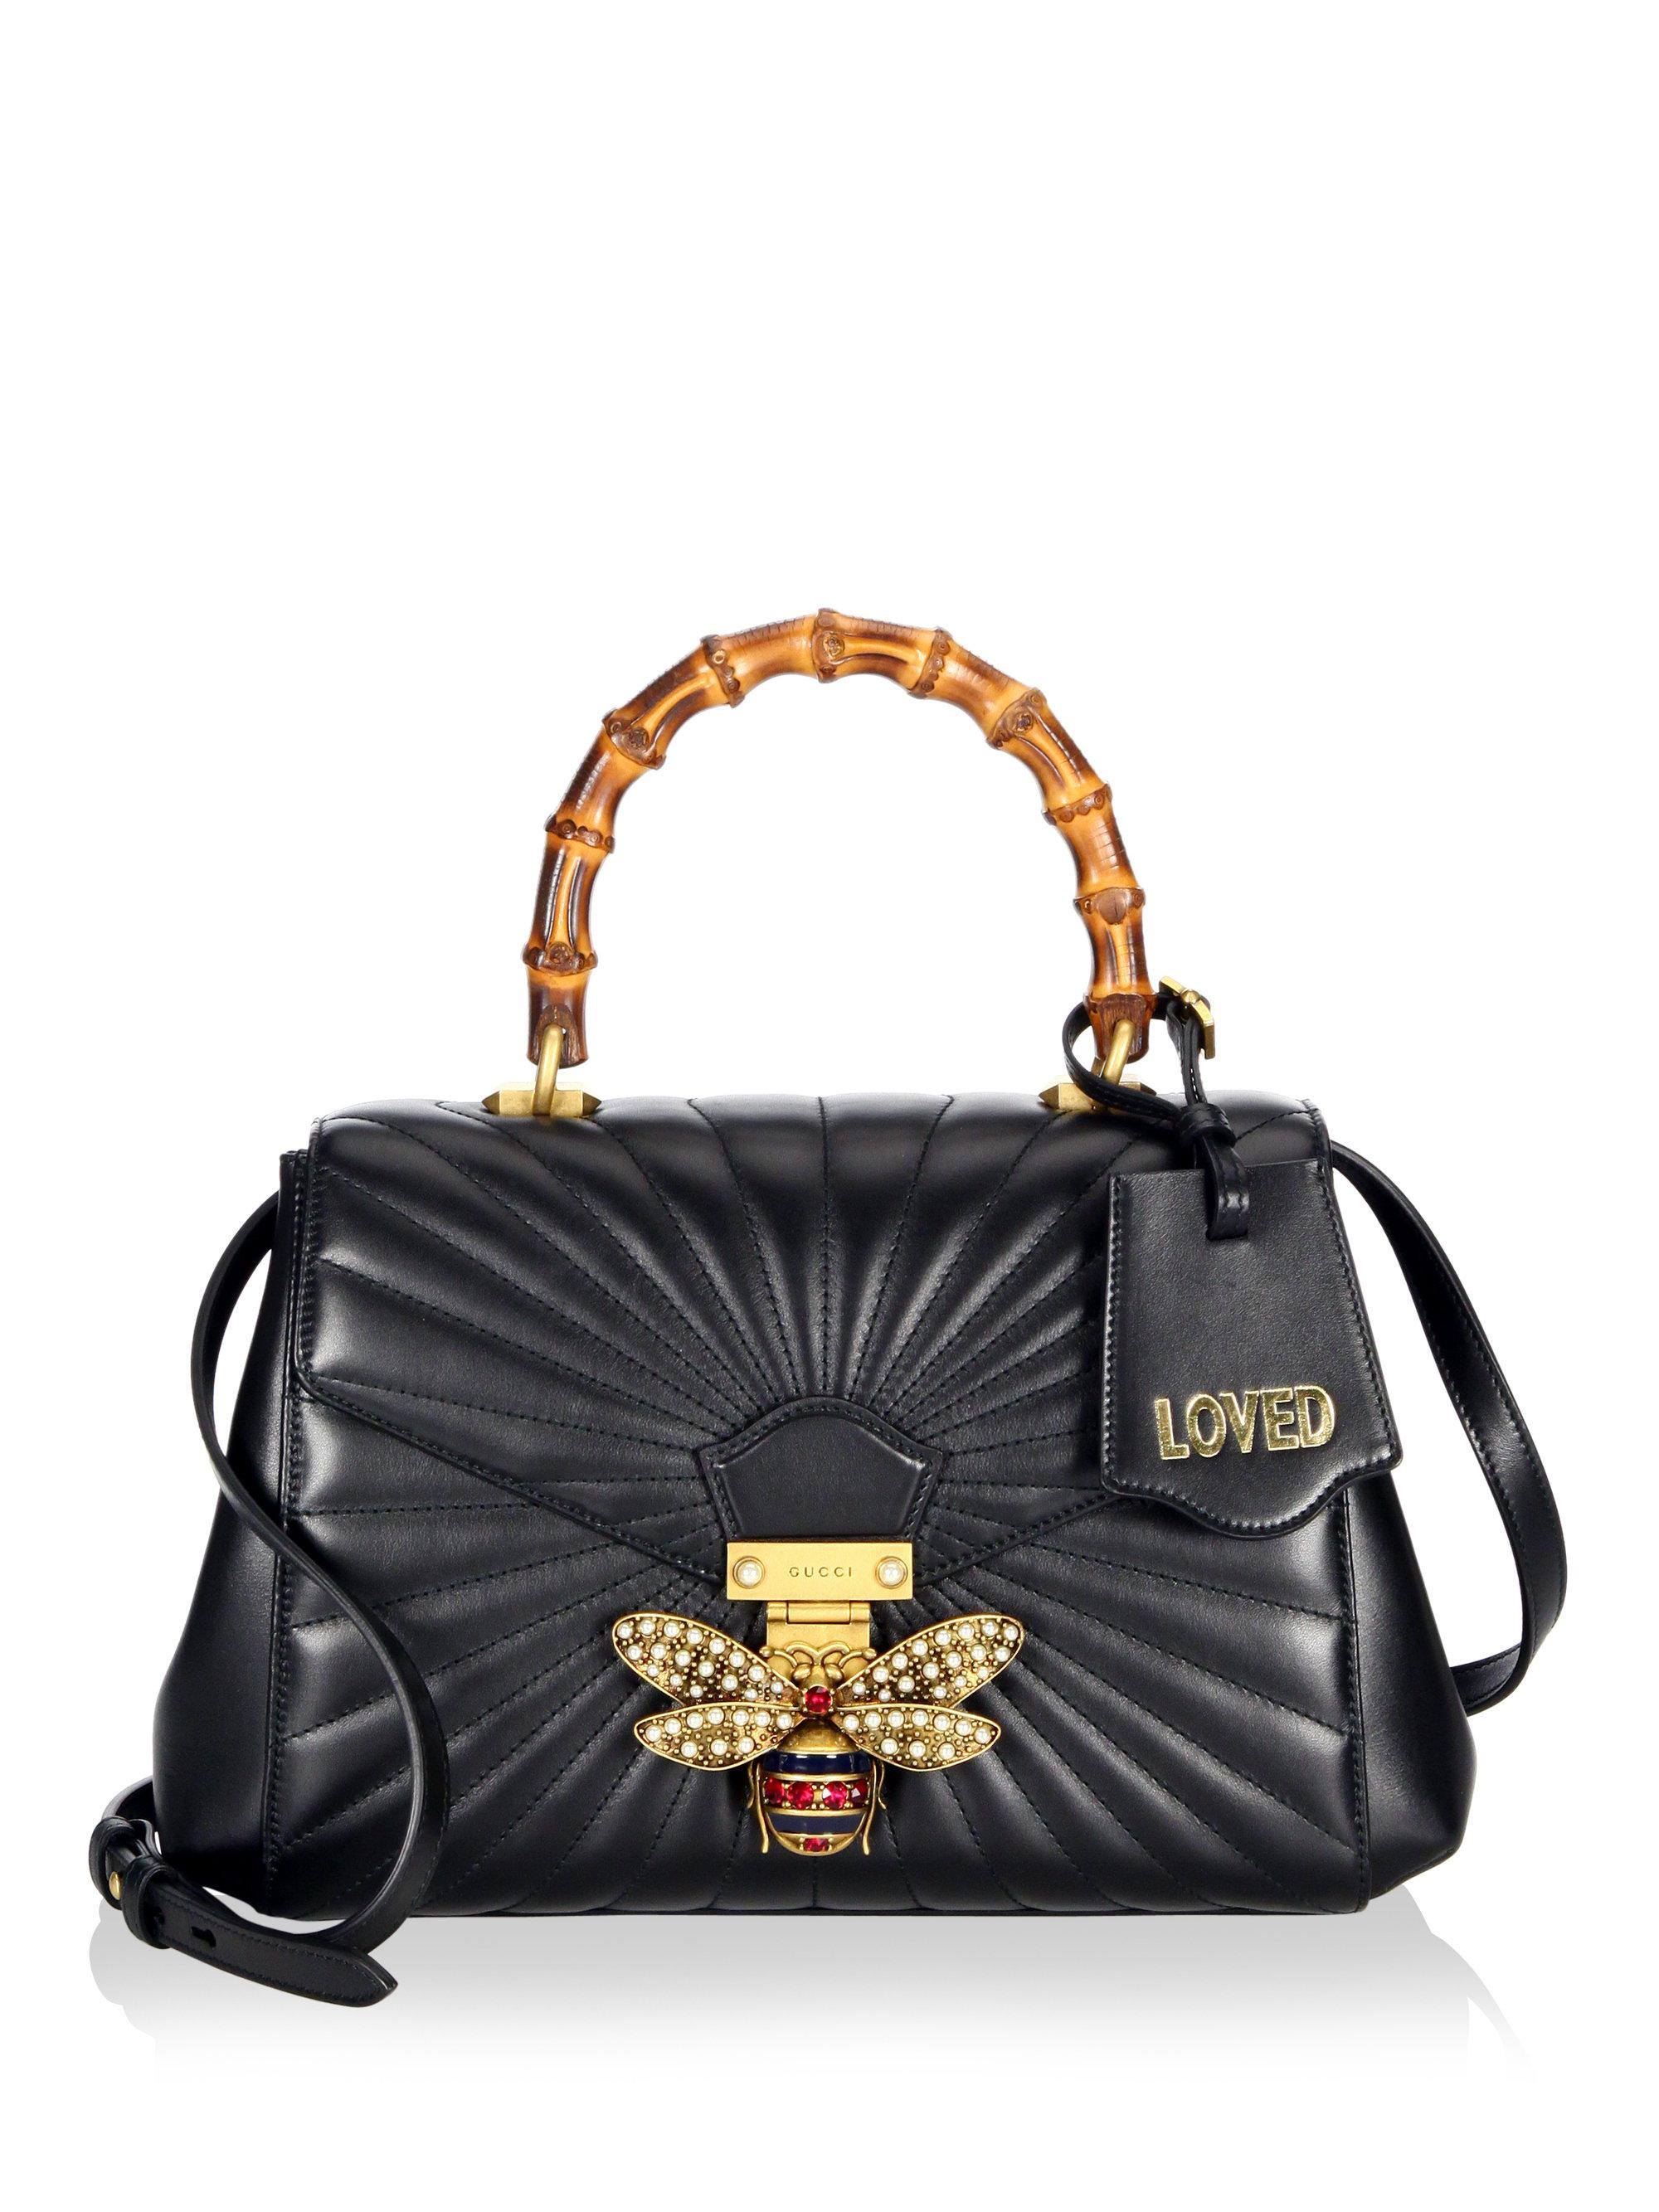 5f4282d3089b Gucci Queen Margaret Quilted Leather Top Handle Bag in Black - Lyst